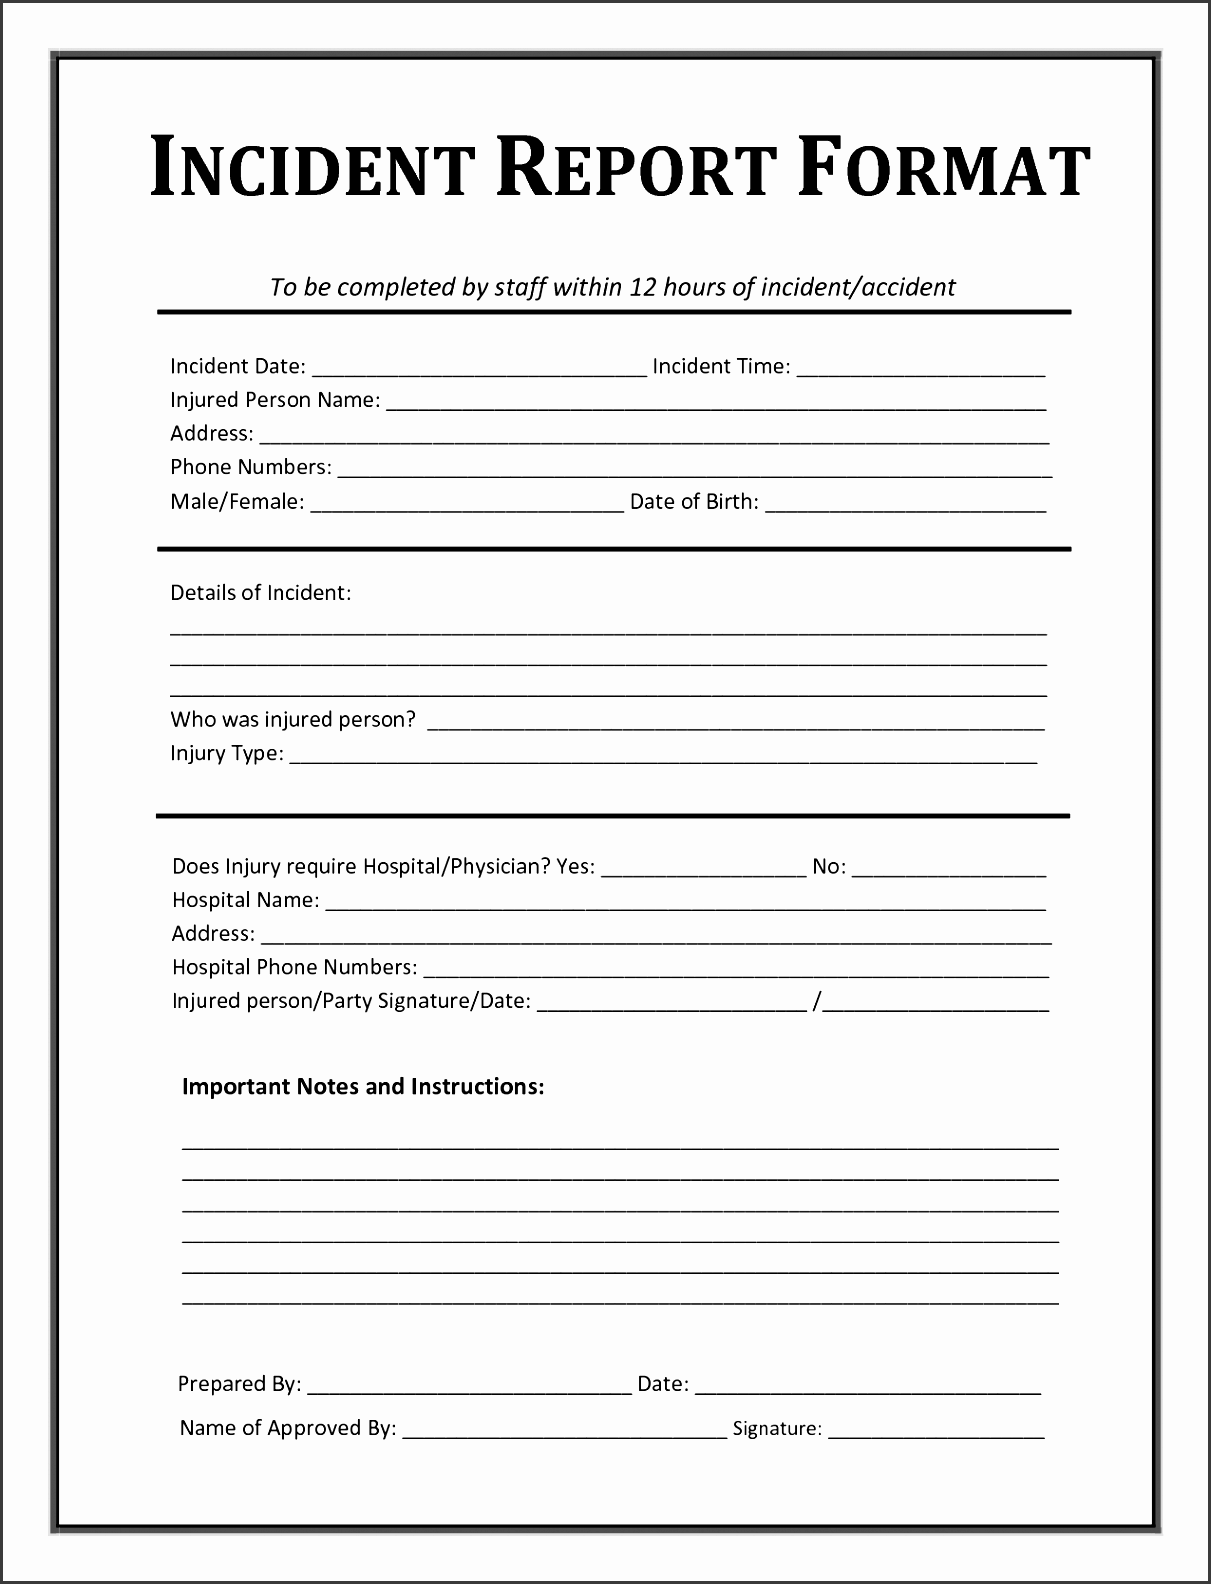 incident report template microsoft child travel consent form intended for incident report form template word 2284